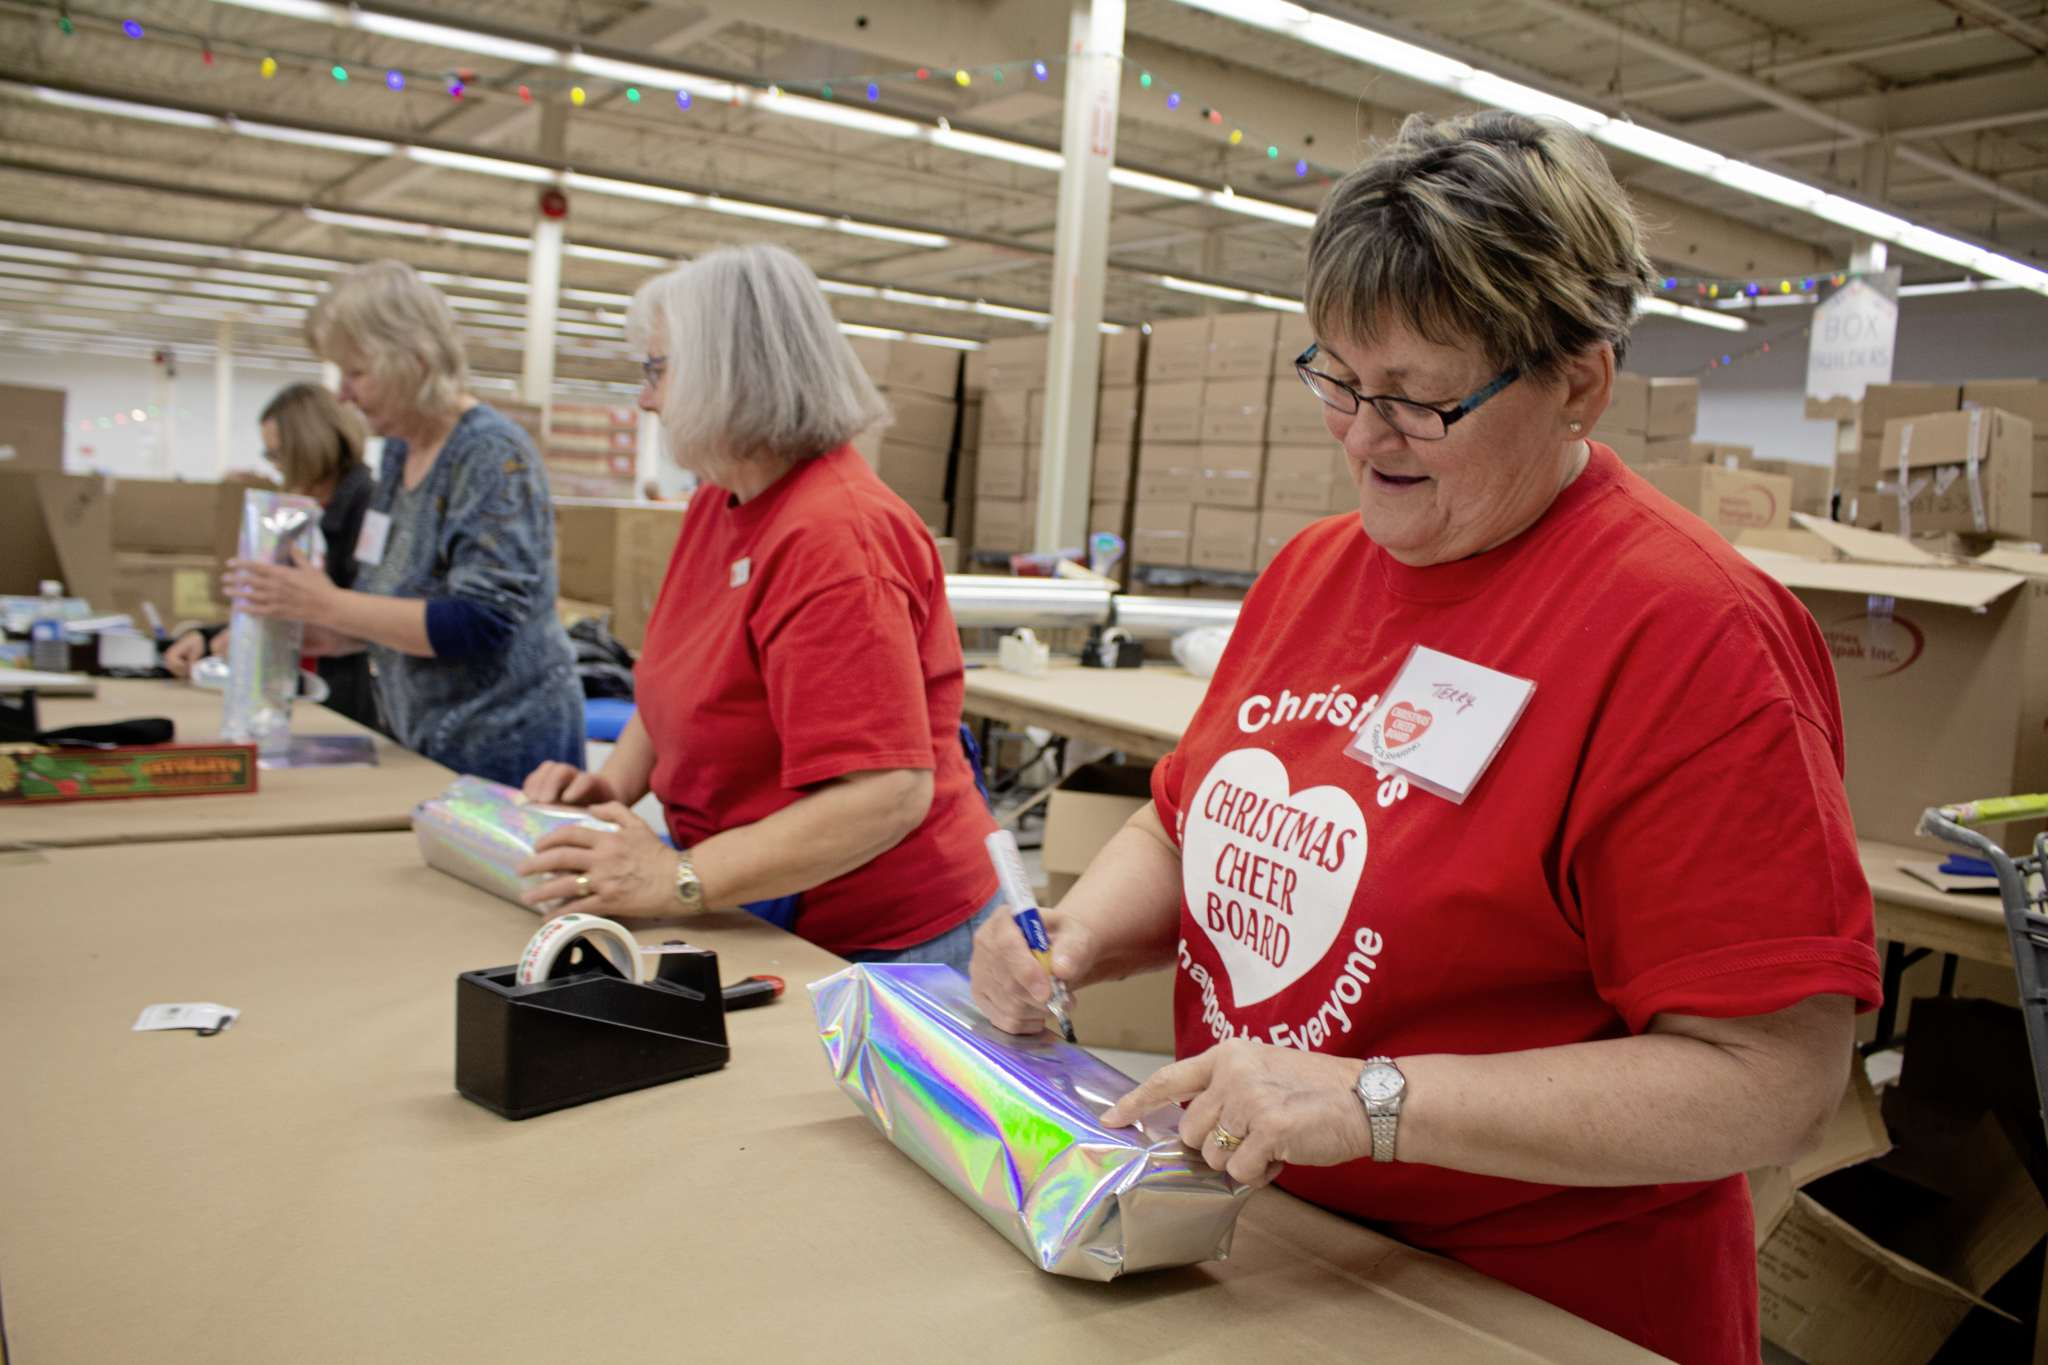 Dec 2, 2019 - Volunteers at the Christmas Cheer Board are wrapping gifts for the christmas hampers(JUSTIN LUSCHINSKI/CANSTAR COMMUNITY NEWS/METRO)